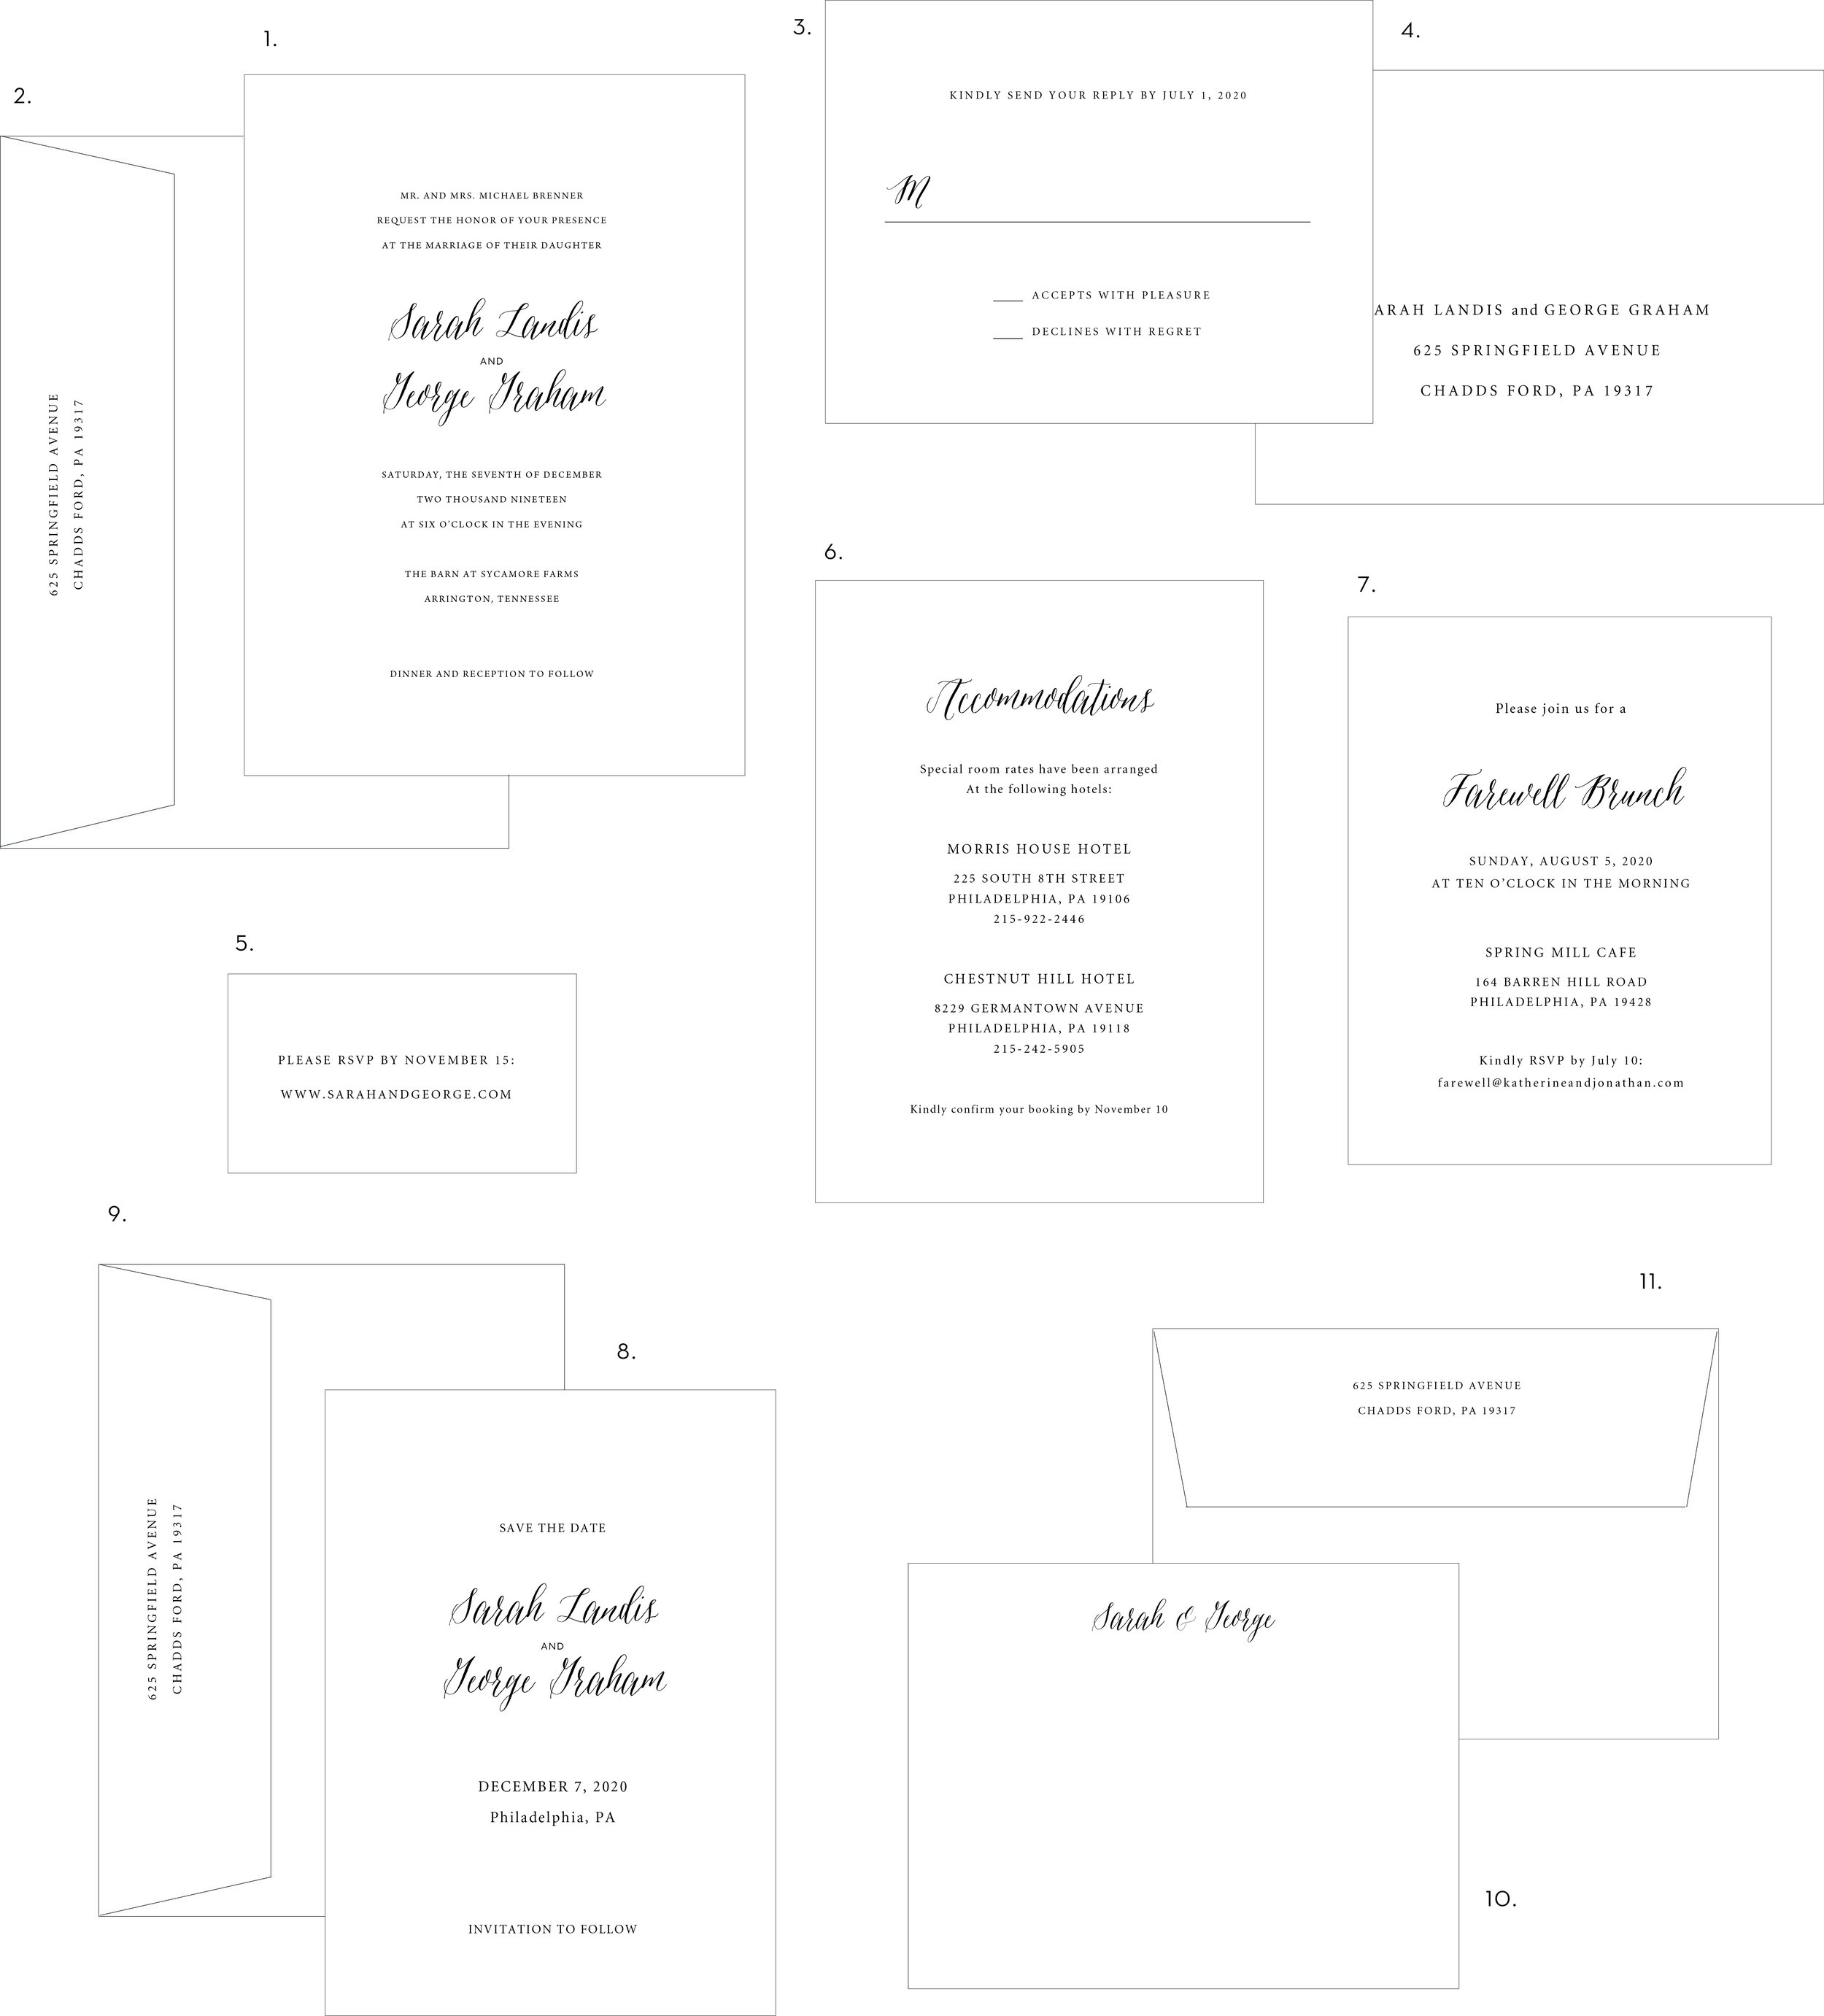 Letterpress Wedding Invitation Scripted Names Style.jpg